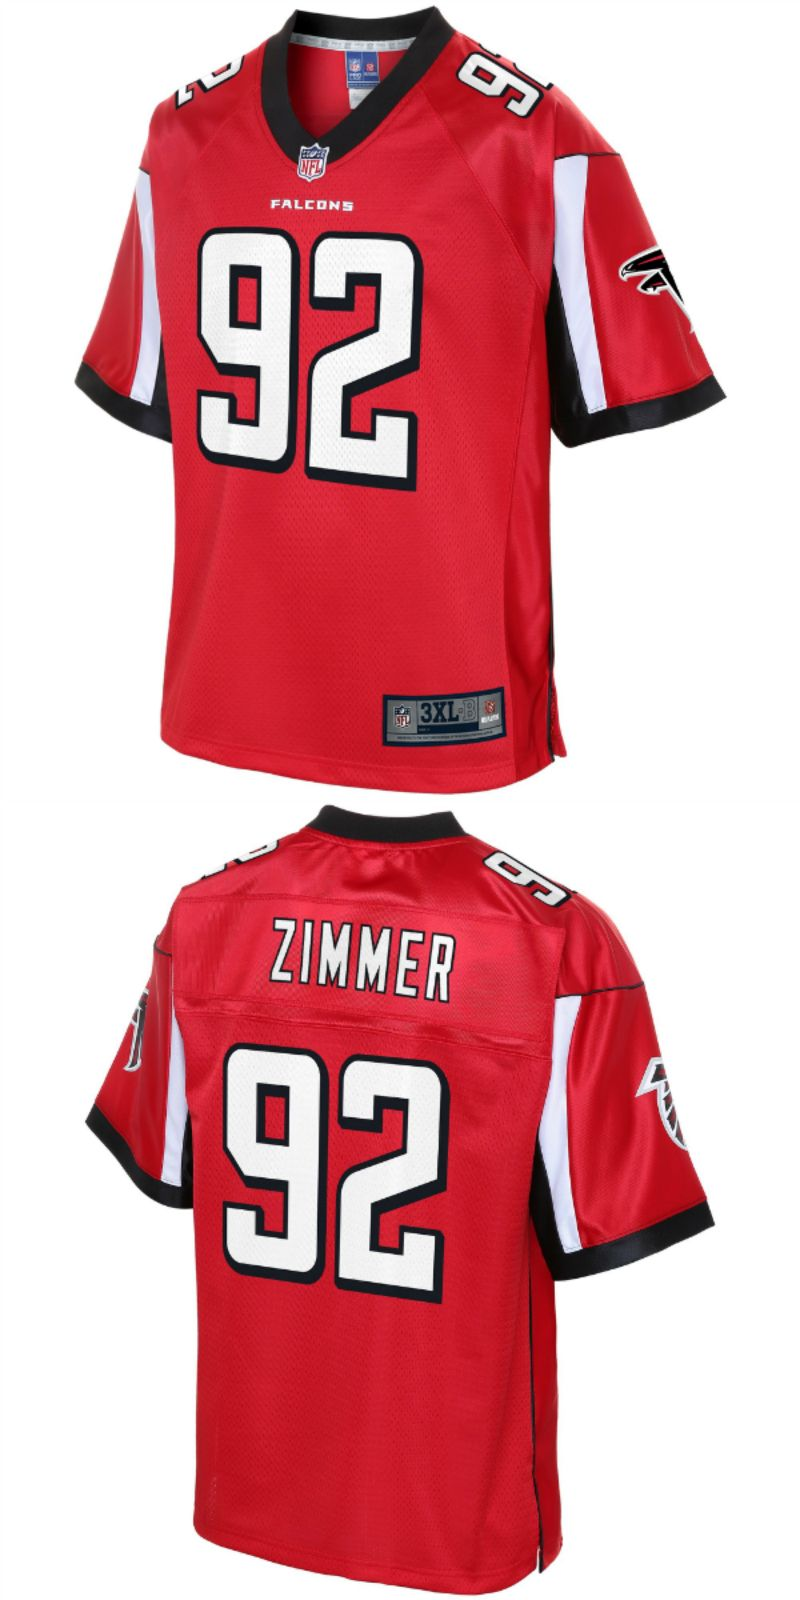 reputable site 84765 bec6a Justin Zimmer Atlanta Falcons NFL Pro Line Big & Tall Player ...